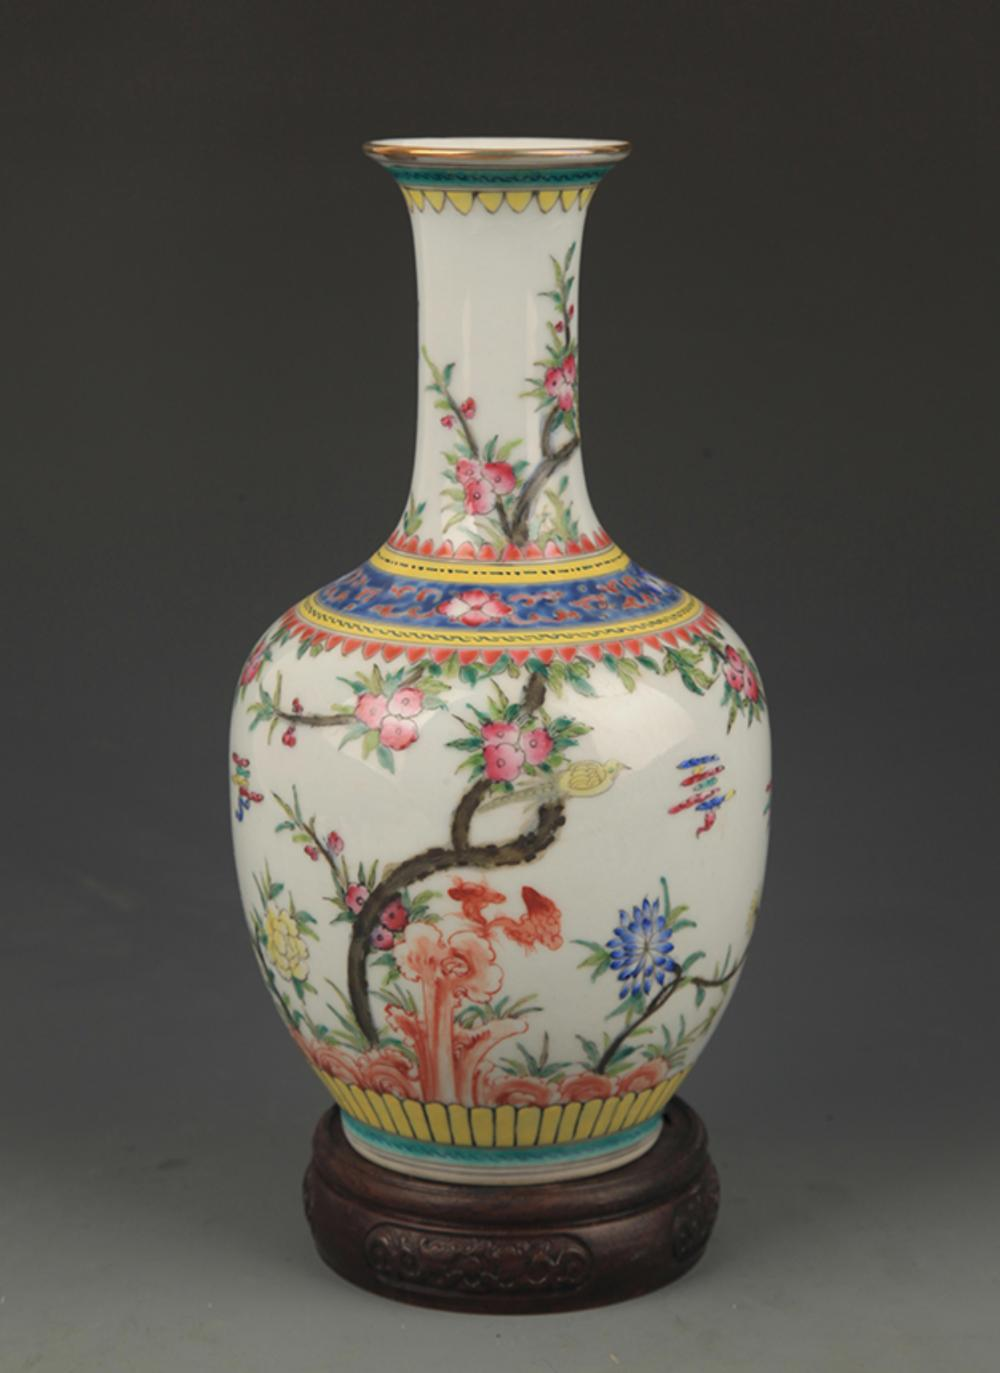 A RARE FAMILLE ROSE FLOWER AND BIRD DECORATIVE VASE